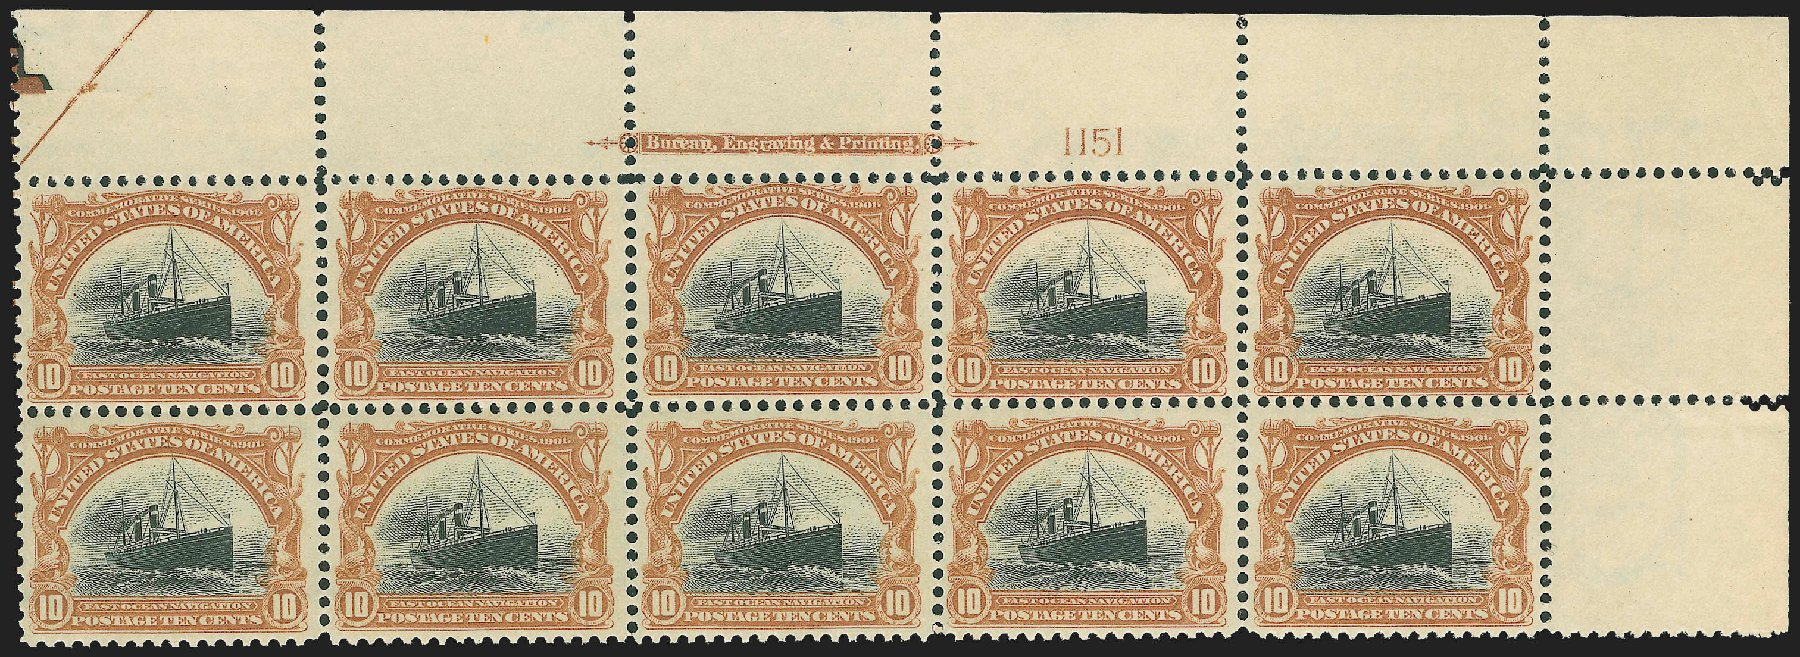 US Stamp Price Scott 299 - 10c 1901 Pan American Exposition. Robert Siegel Auction Galleries, Jul 2015, Sale 1107, Lot 407